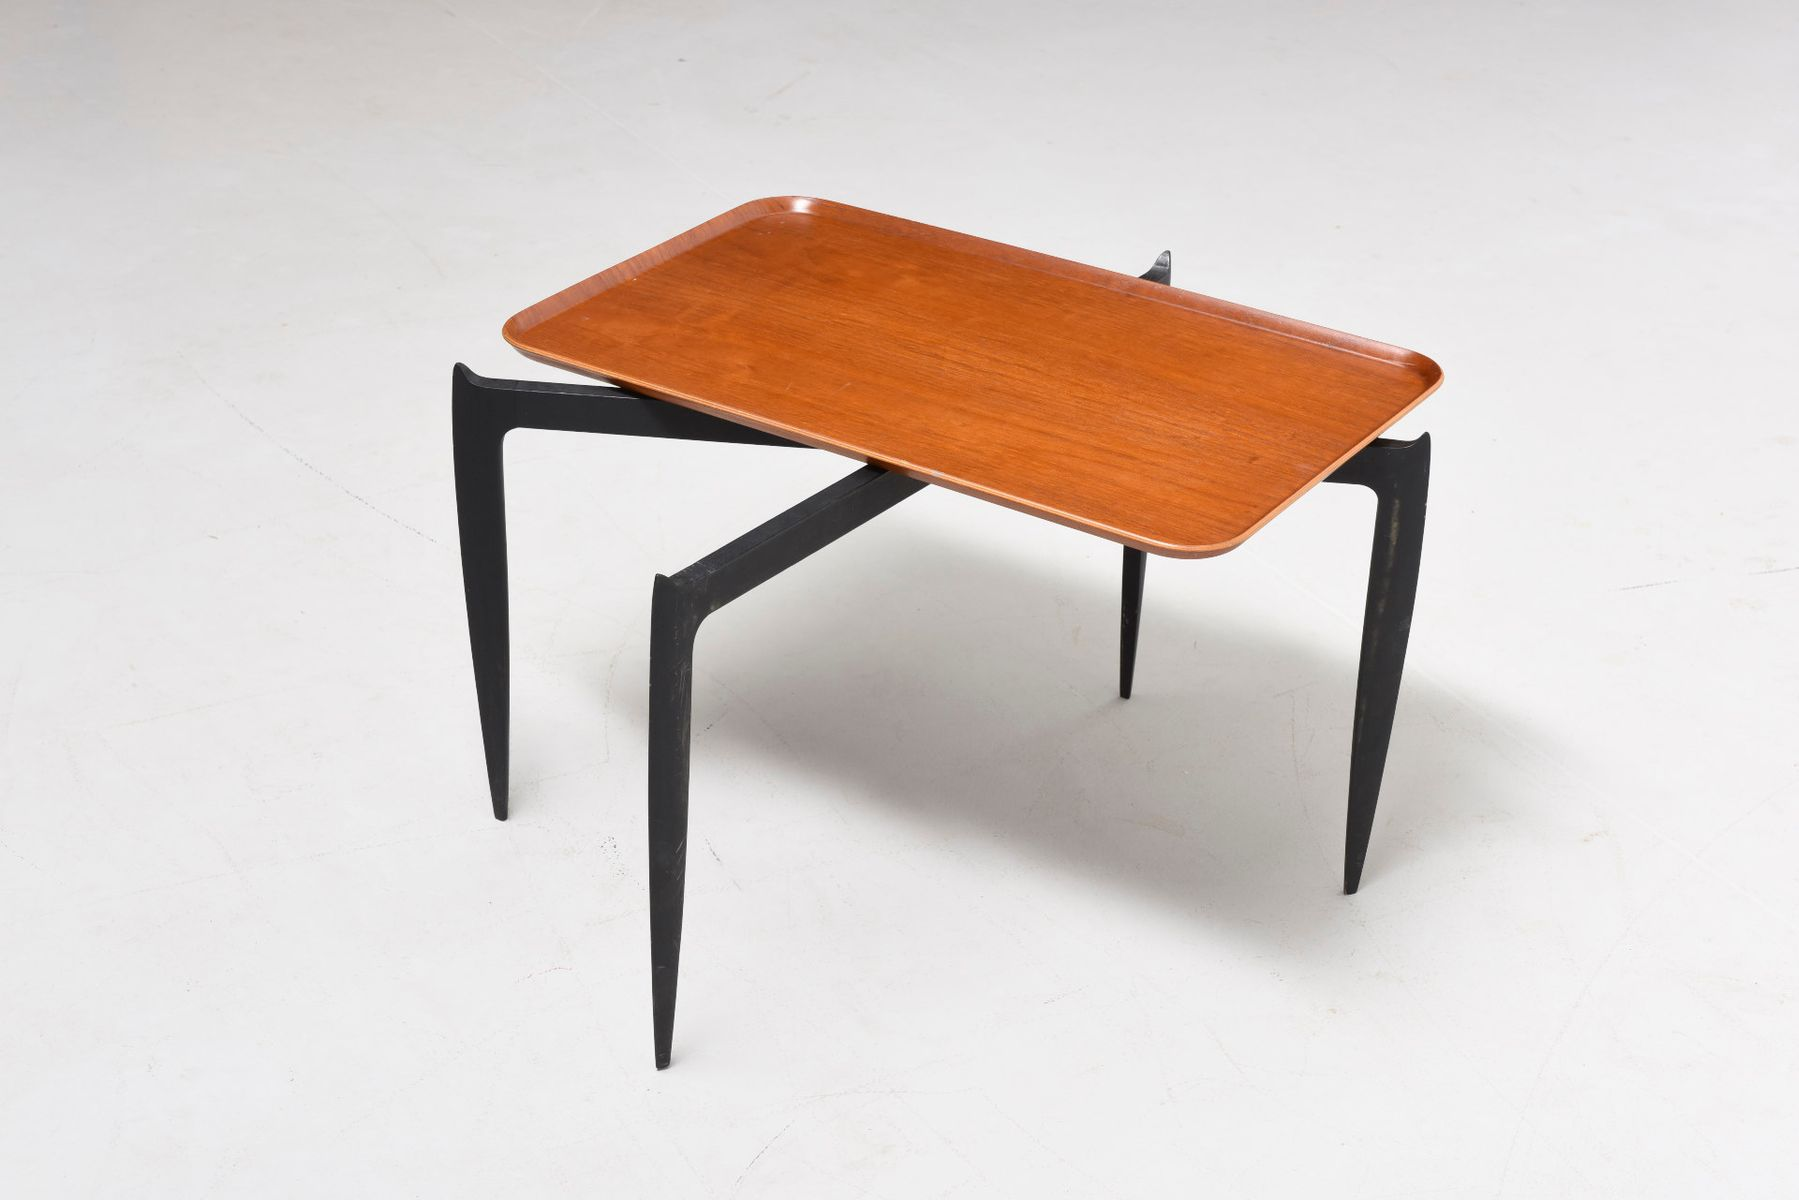 low midcentury table by sven aage willumsen  h engholm for  - low midcentury table by sven aage willumsen  h engholm for fritz hansen